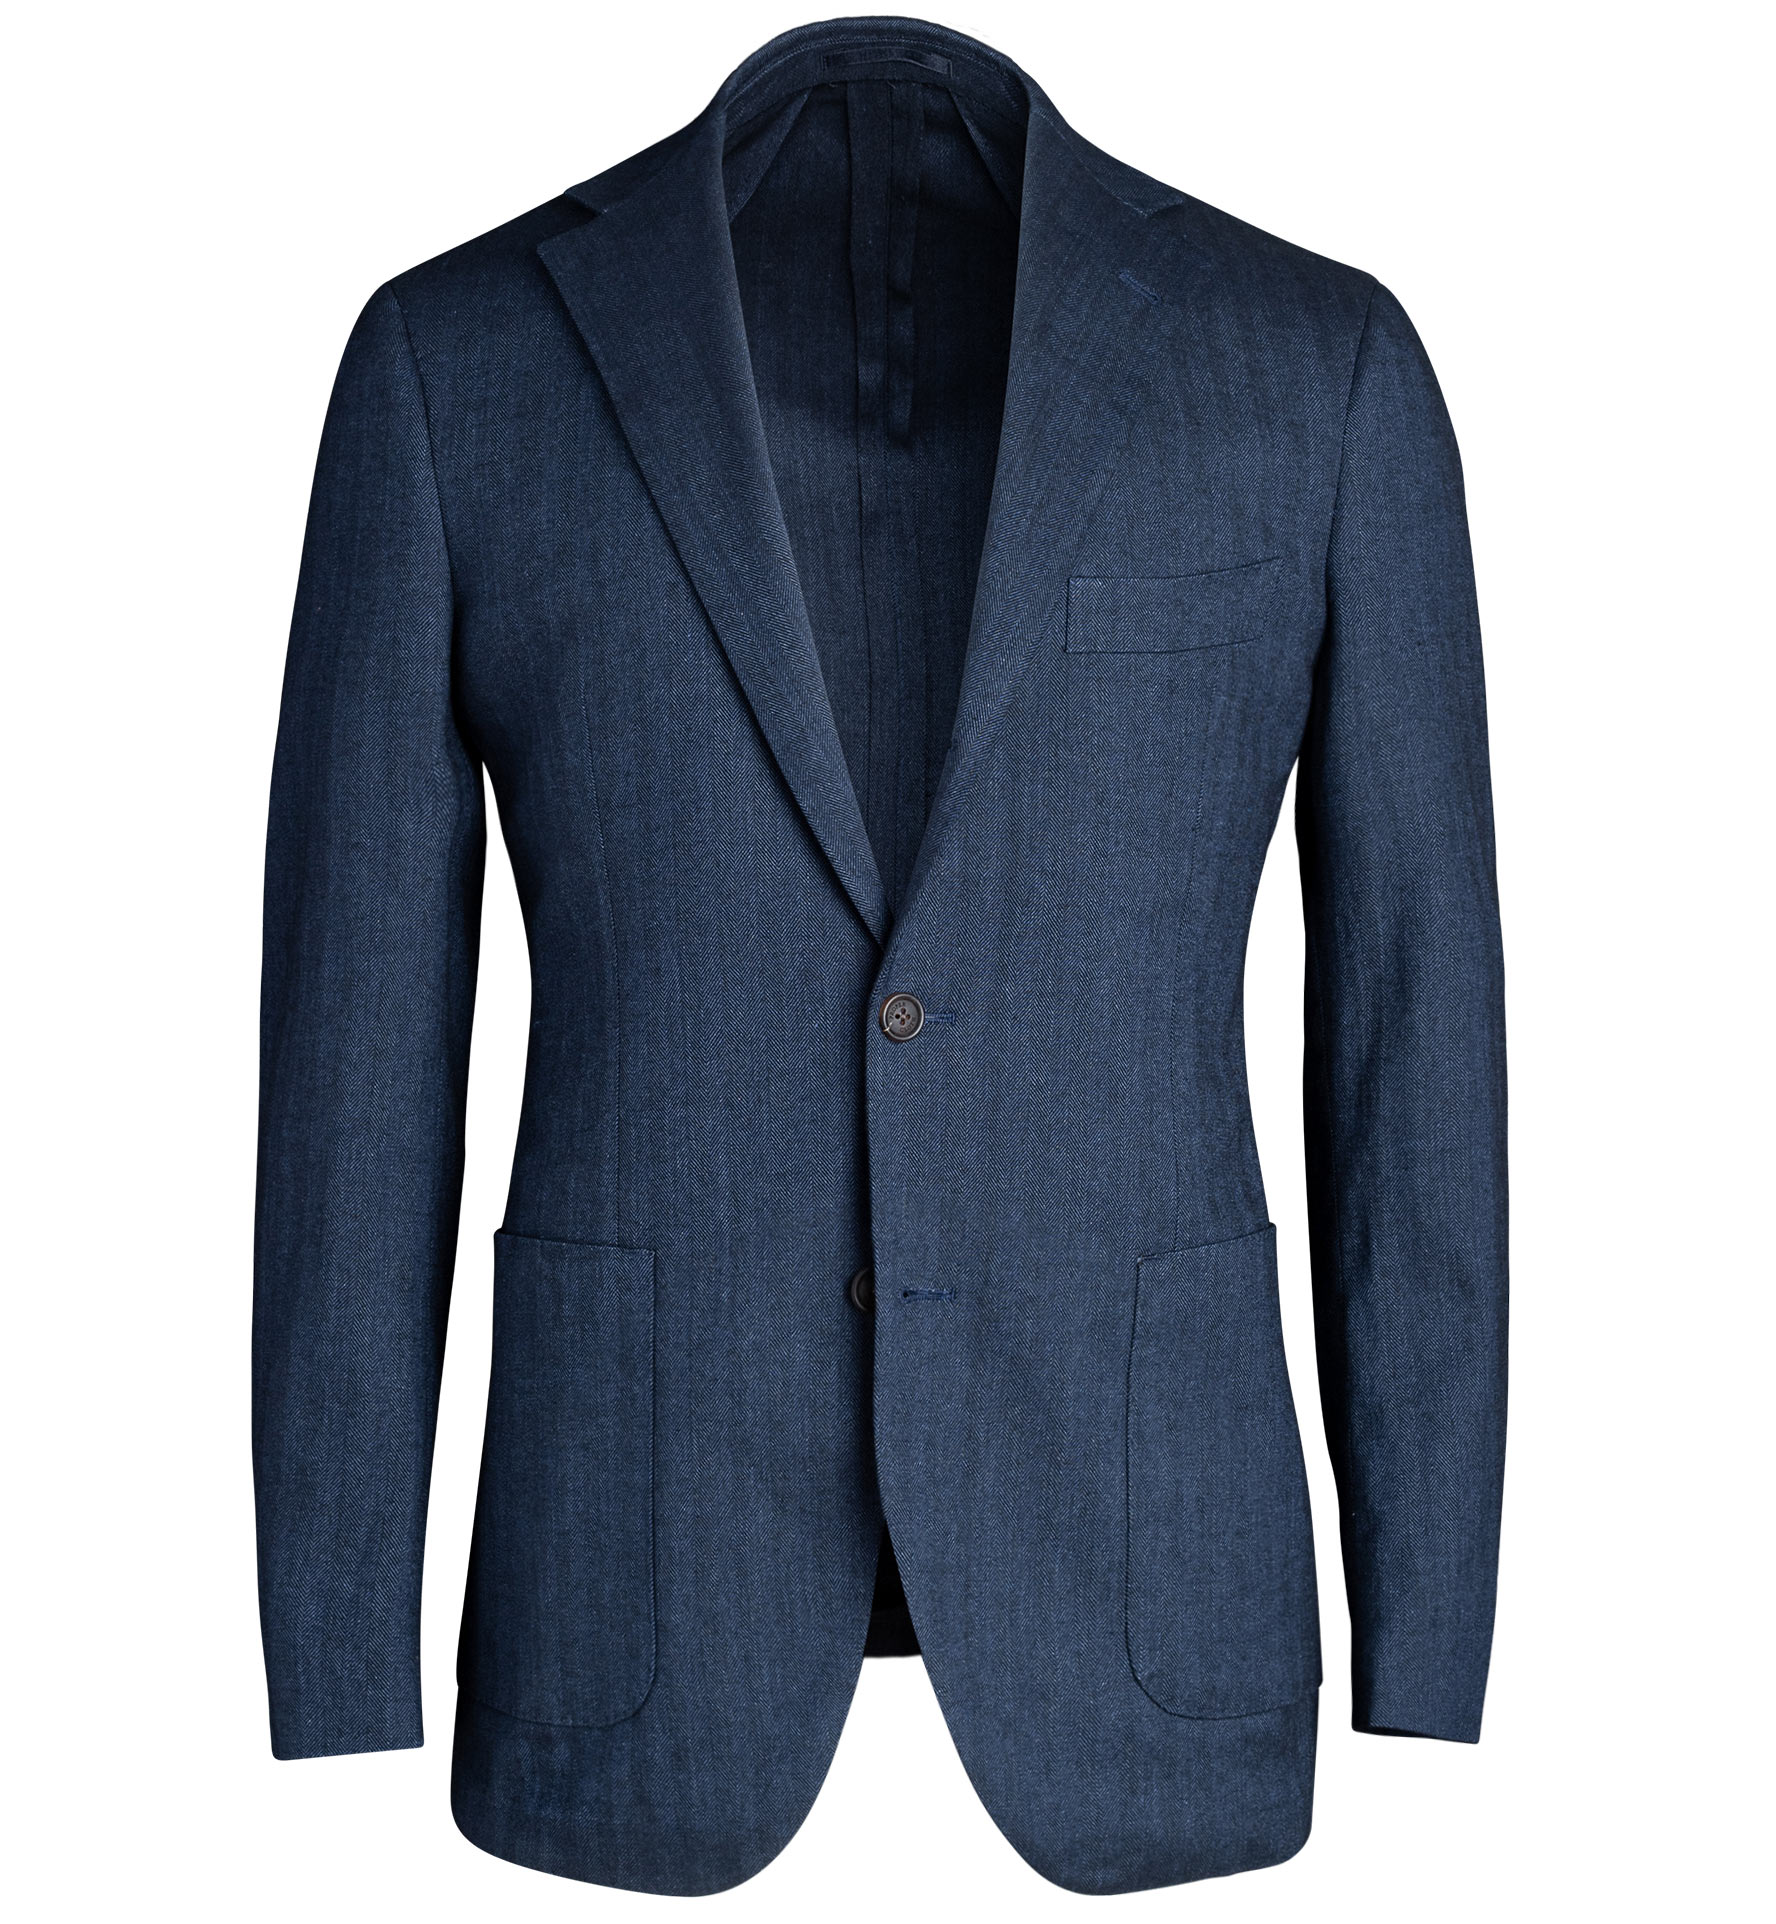 Zoom Image of Waverly Navy Cotton and Linen Stretch Herringbone Jacket